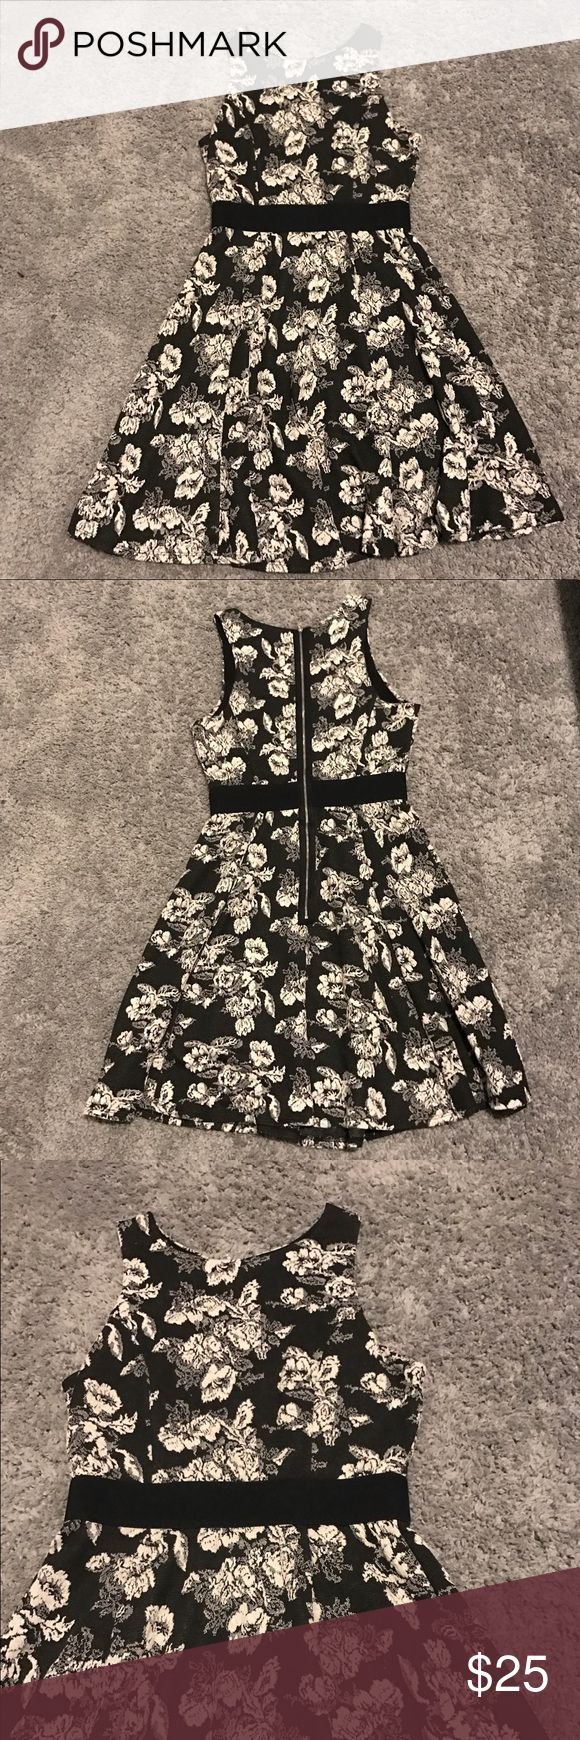 Black and Cream Floral Fit and Flare Dress Flora patterned dress with fitted waist band and flared skirt. Exposed back zipper. Thick and soft stretchy material. Brand is Bobeau (sold at Nordstrom). Size medium. bobeau Dresses